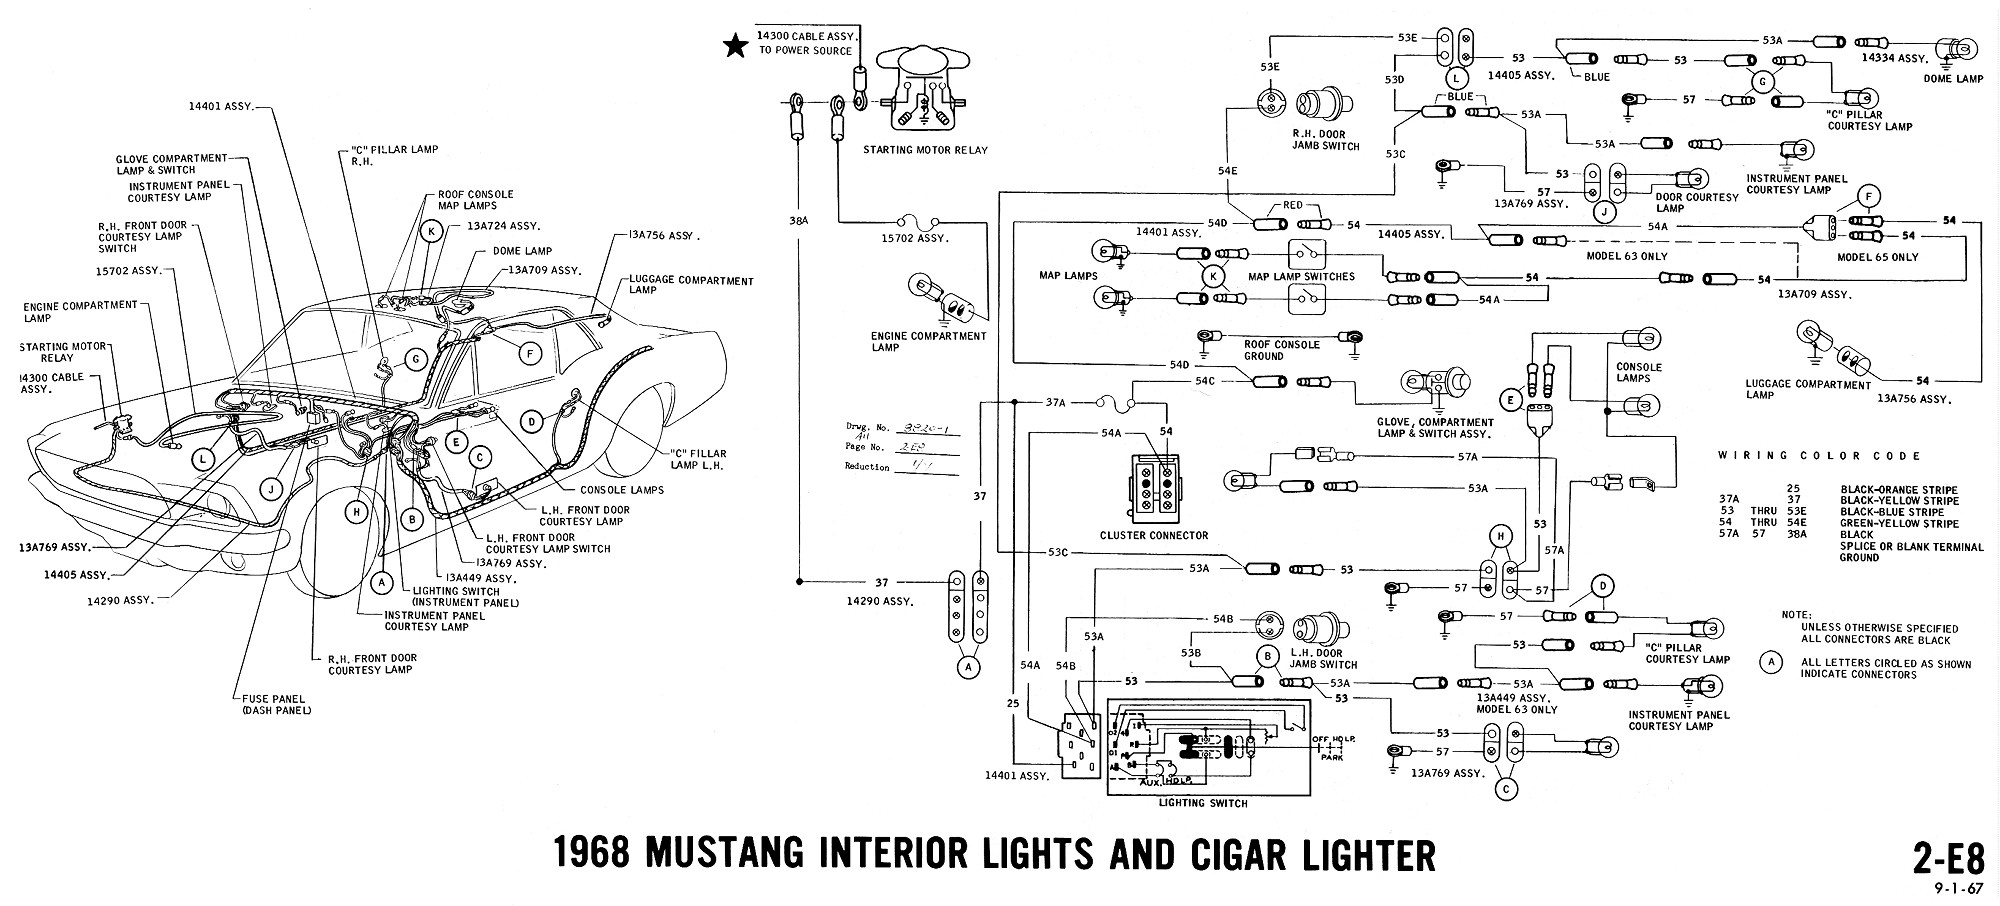 1968 mustang wiring diagram interior lights cigar lighter 2015 mustang wiring diagram schematic mustang 2015 \u2022 free wiring 1966 mustang wiring harness kit at n-0.co